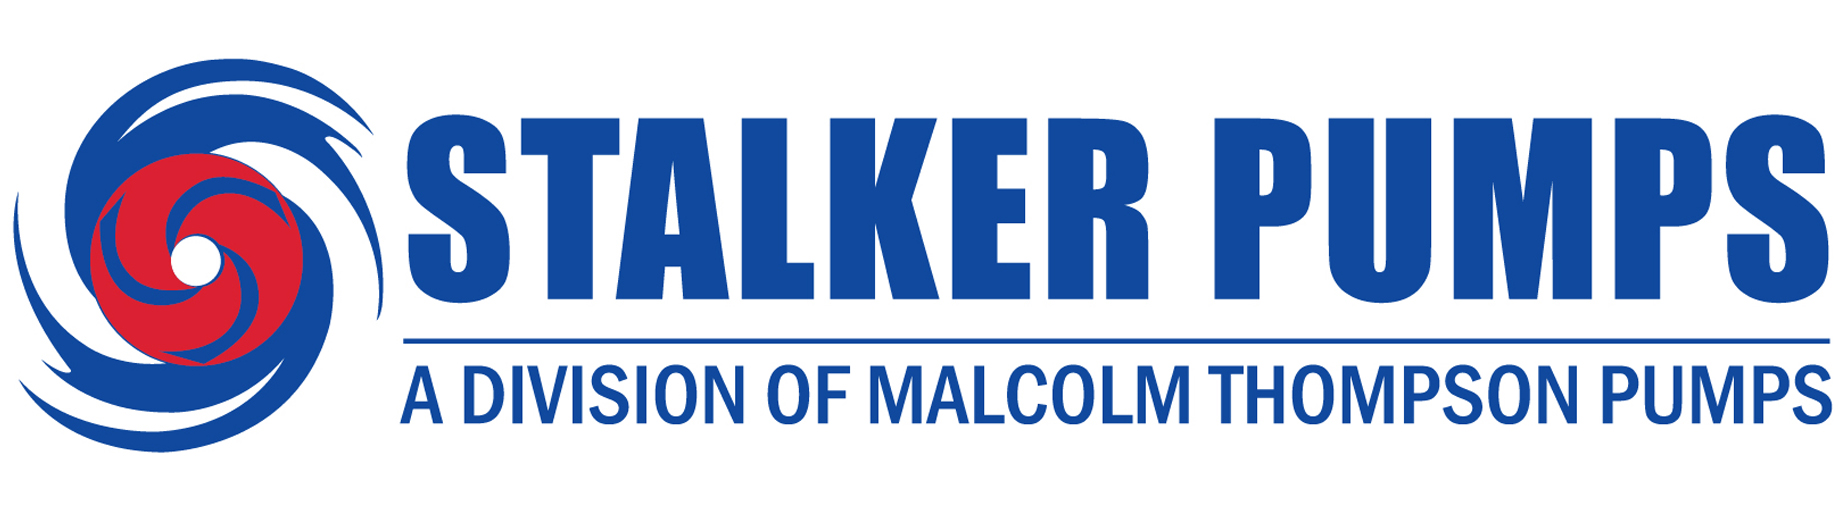 Stalker Pumps logo